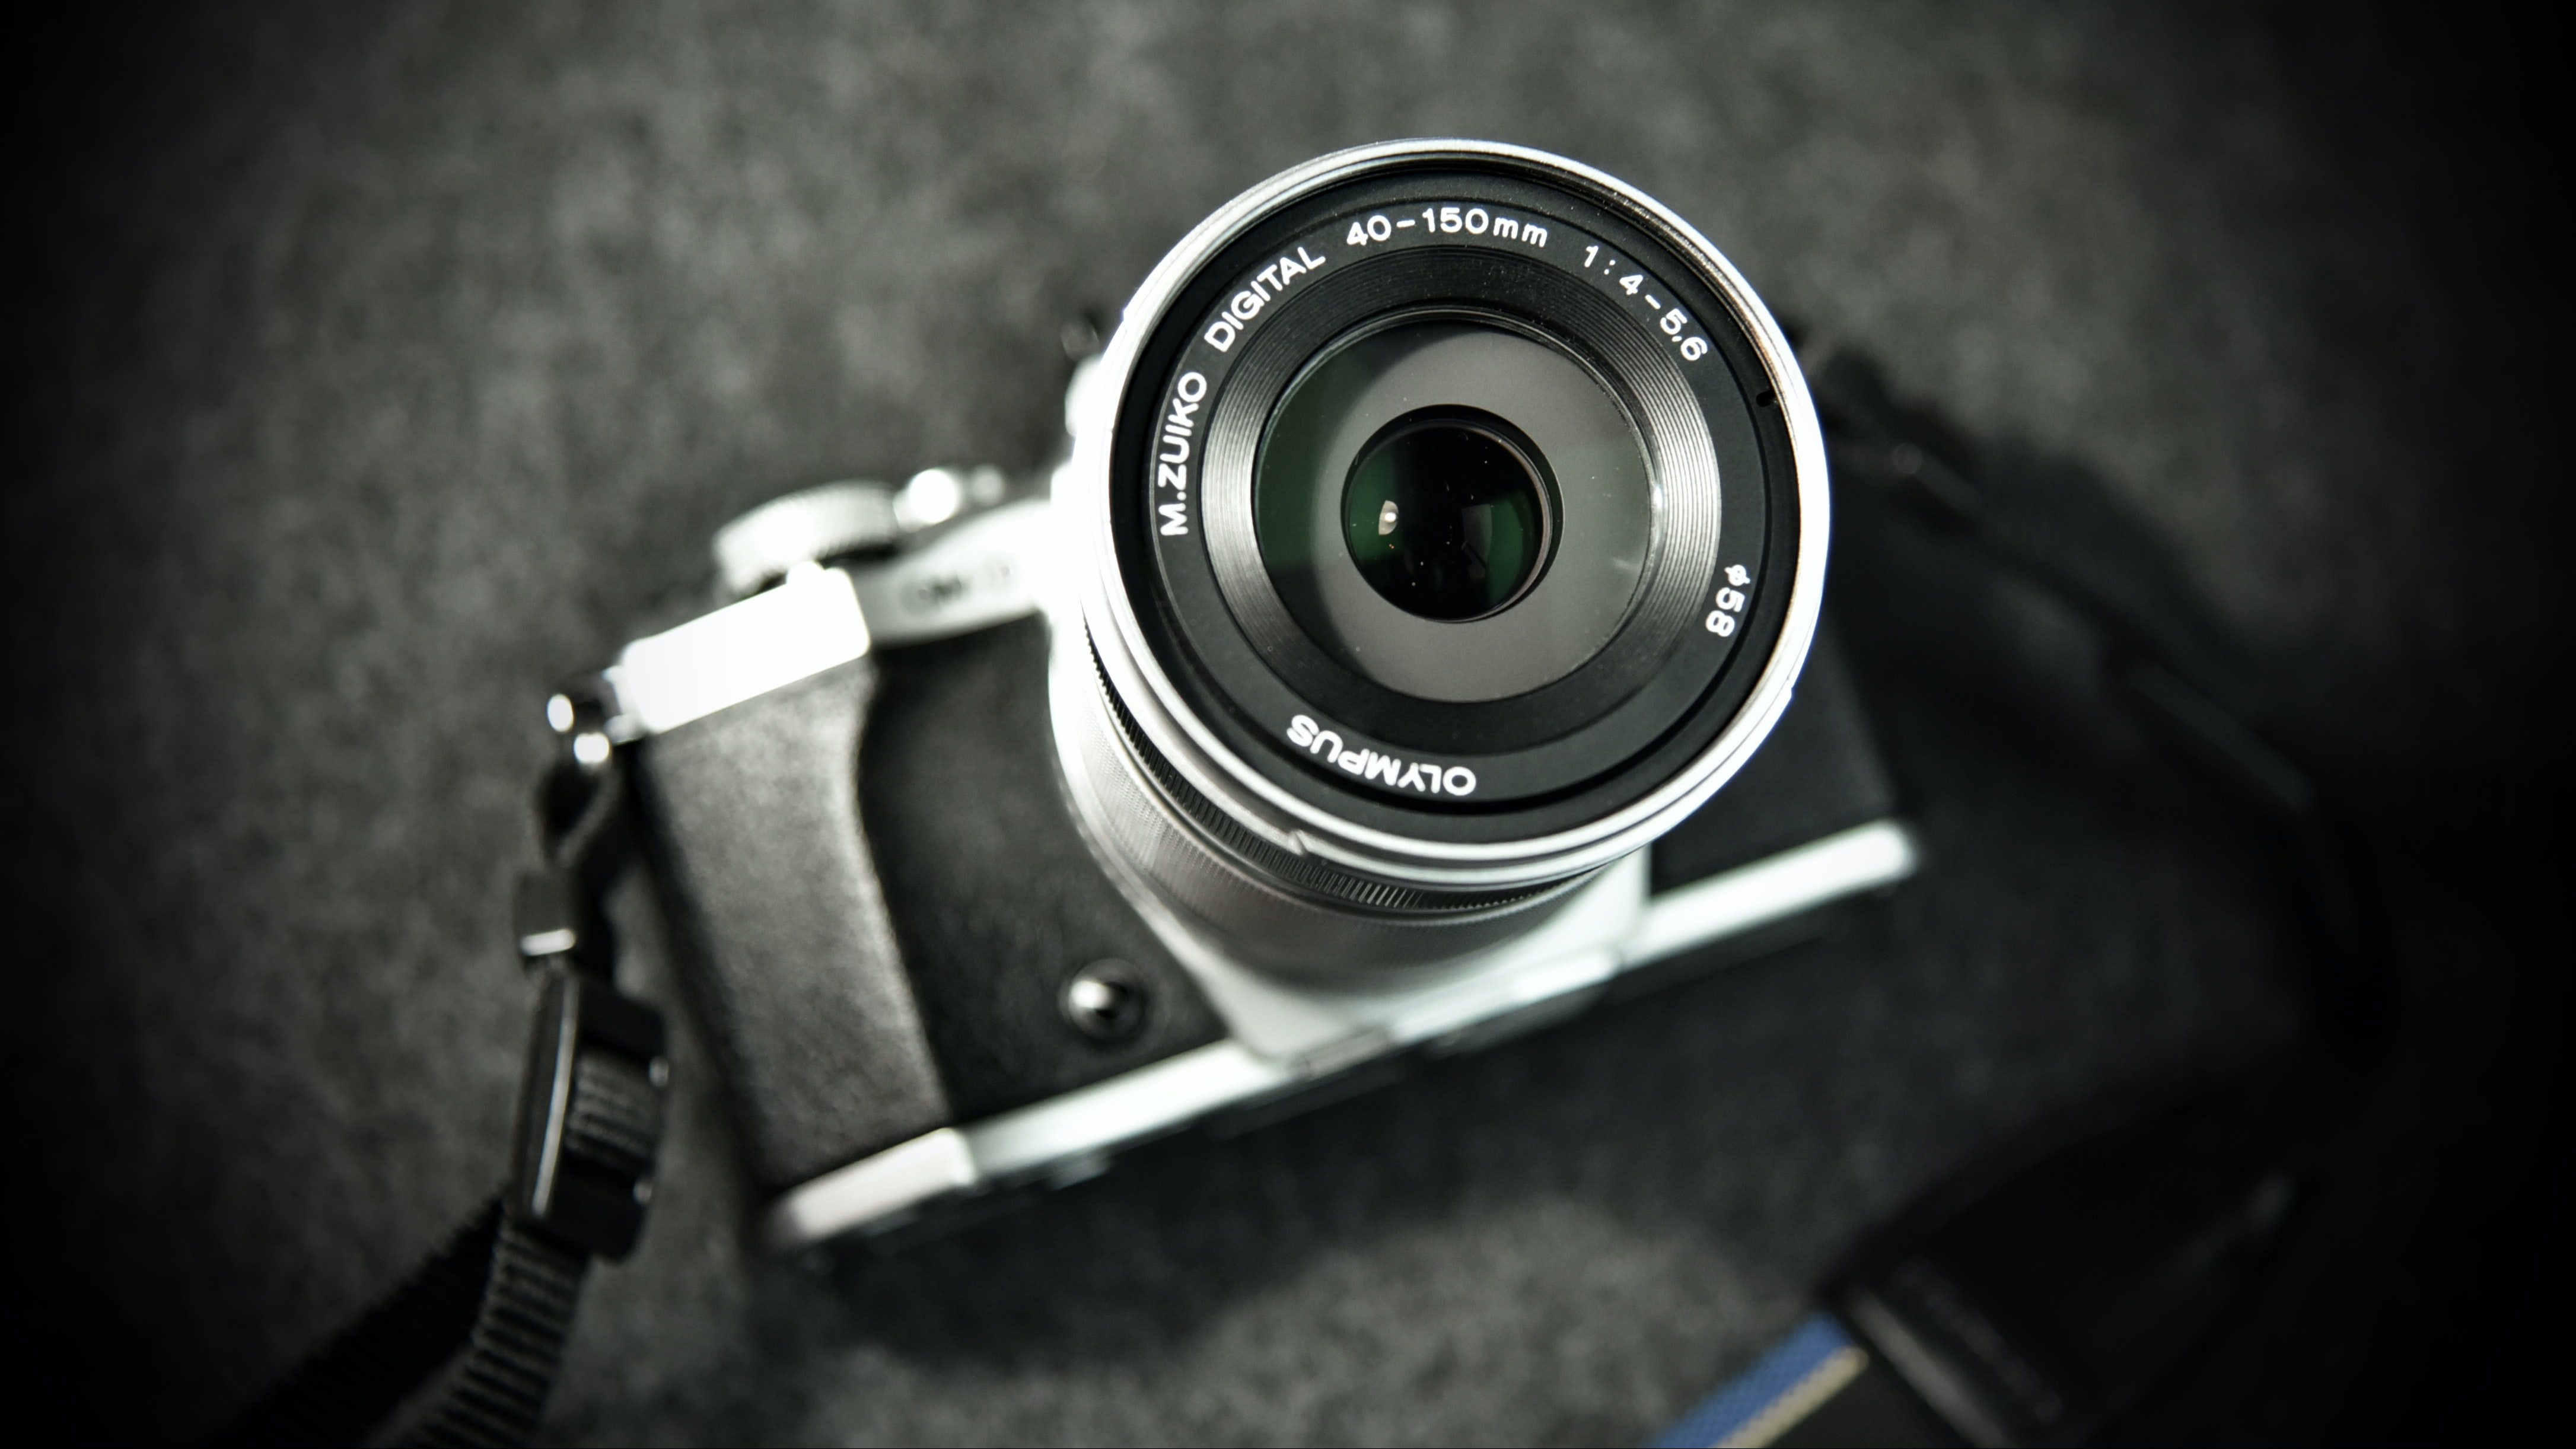 grayscale photography of DSLR camera on gray surface